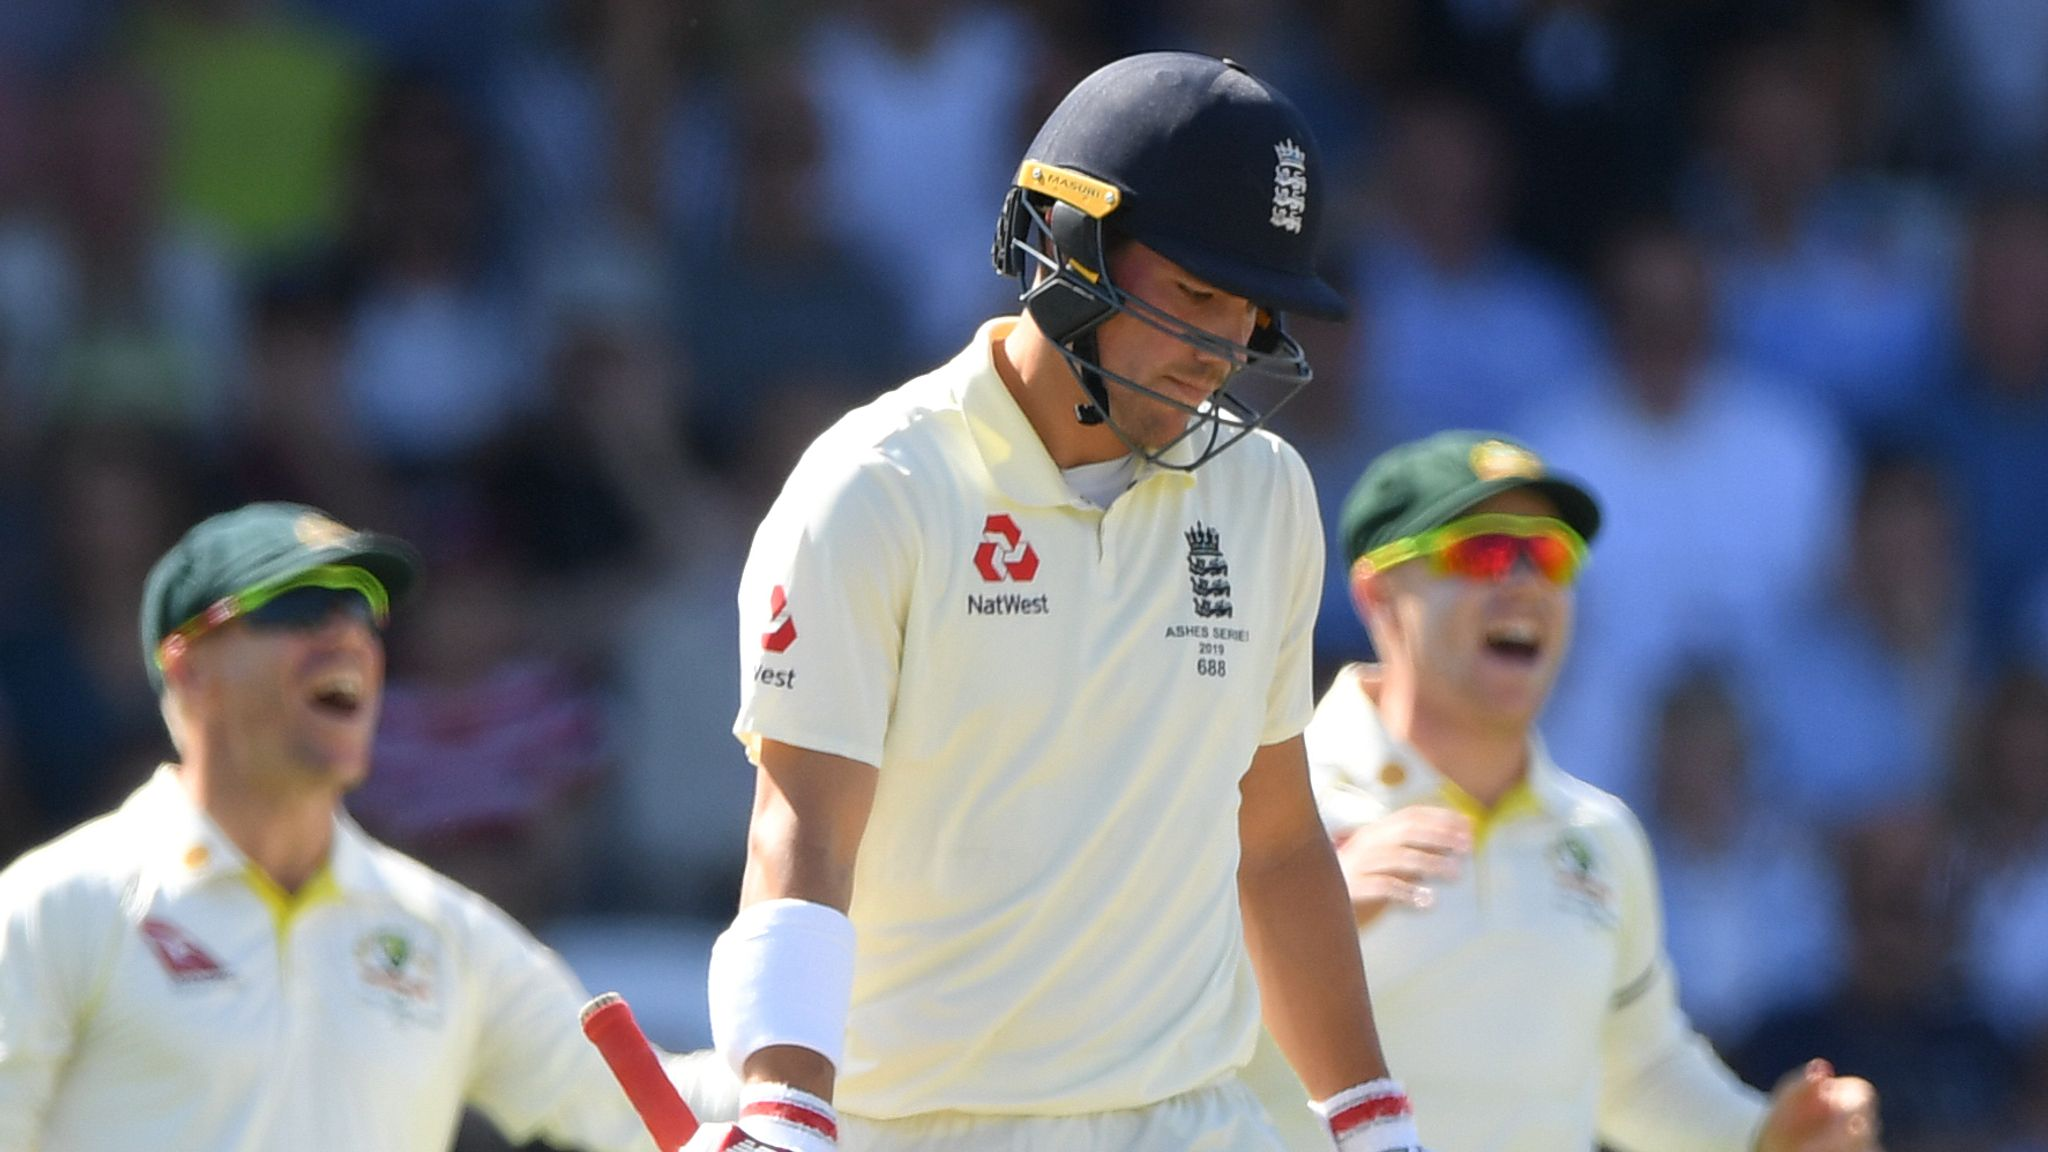 Ashes Debate Podcast: Bob Willis says England 'abject' at